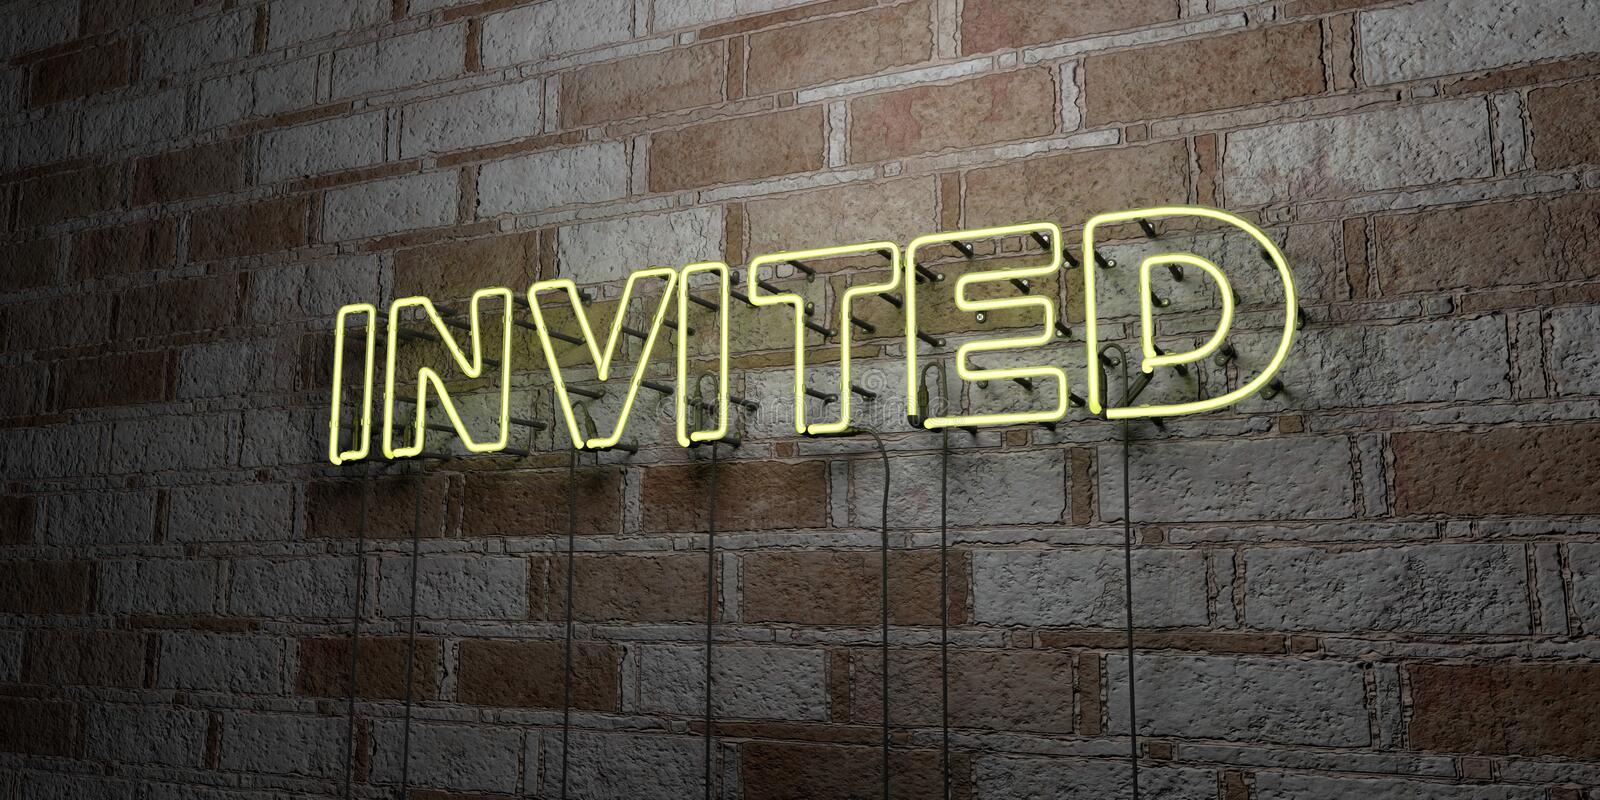 INVITED - Glowing Neon Sign on stonework wall - 3D rendered royalty free stock illustration royalty free illustration